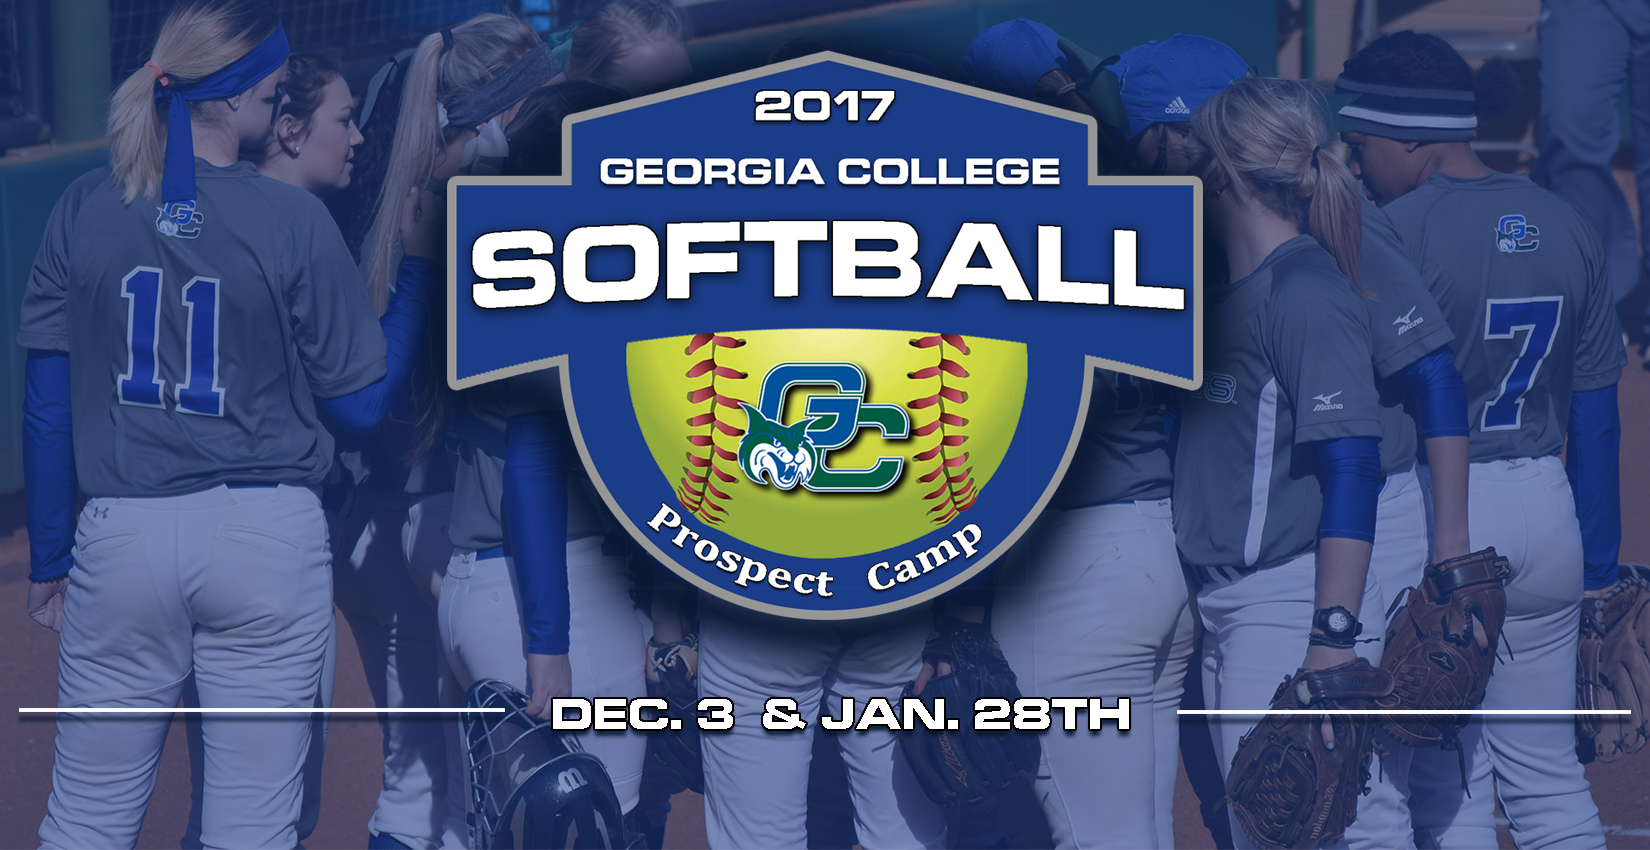 GC Softball to Host Prospect Camp Jan. 28